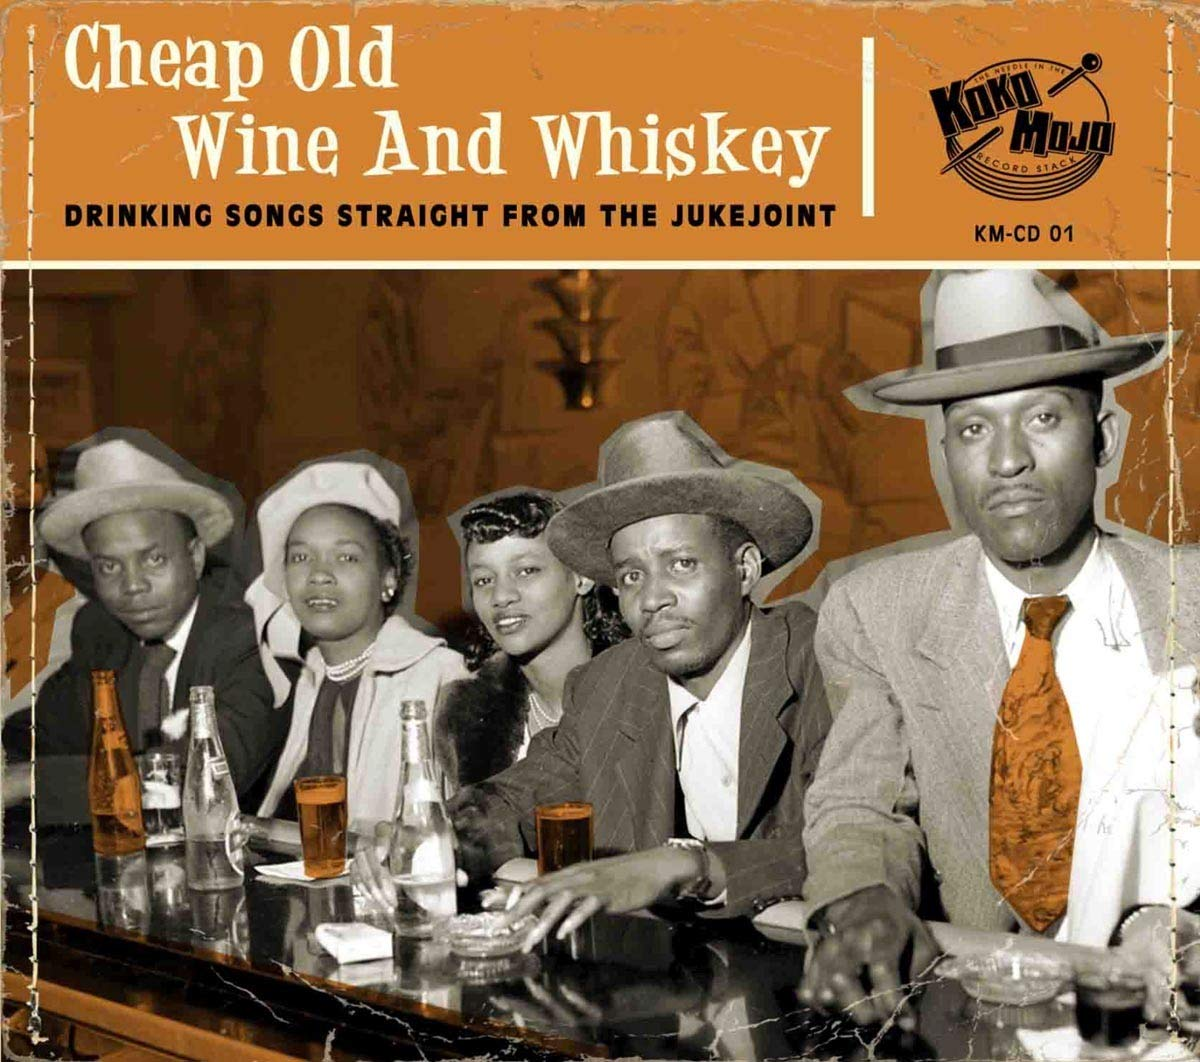 Cheap Old Wine Whiskey Price Max 81% OFF reduction